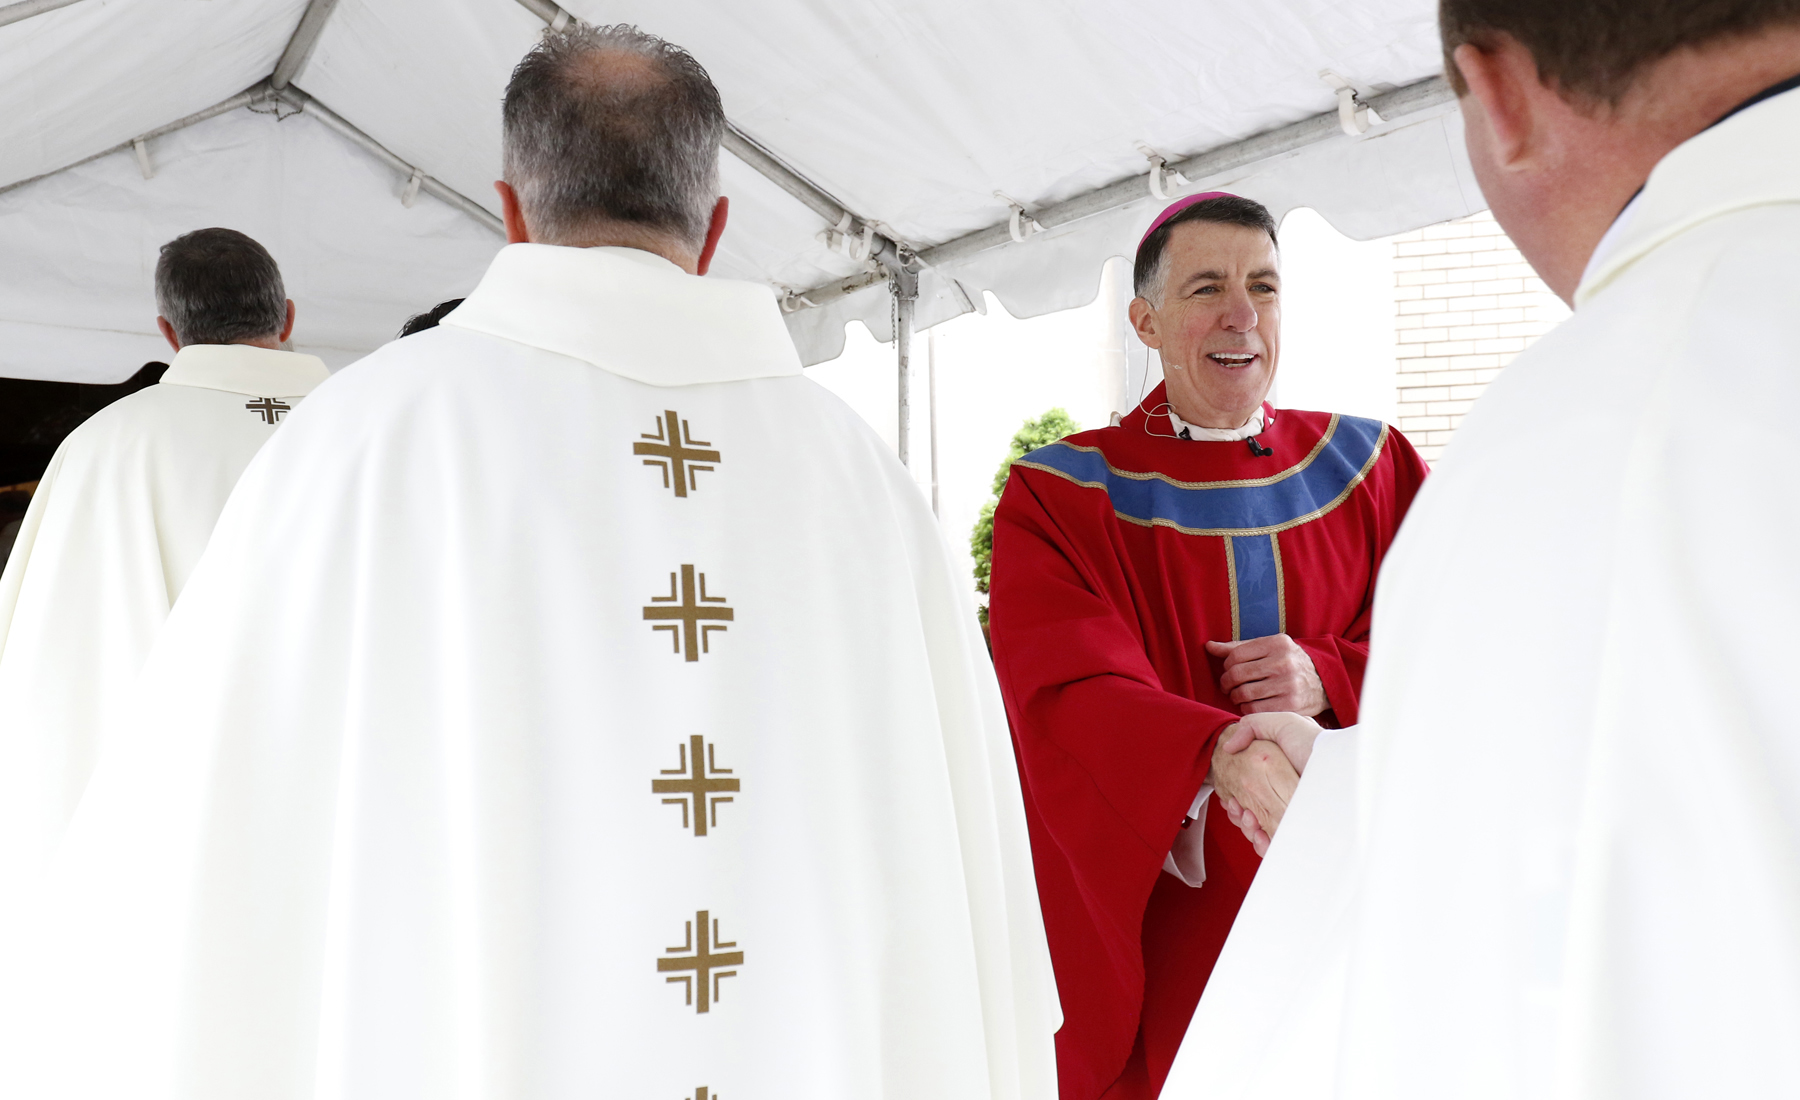 Bishop James F. Checchio greets priests prior to his episcopal ordination and installation as fifth bishop of Metuchen, N.J., May 3 at Sacred Heart Church in South Plainfield, N.J. (CNS photo/Gregory A. Shemitz)